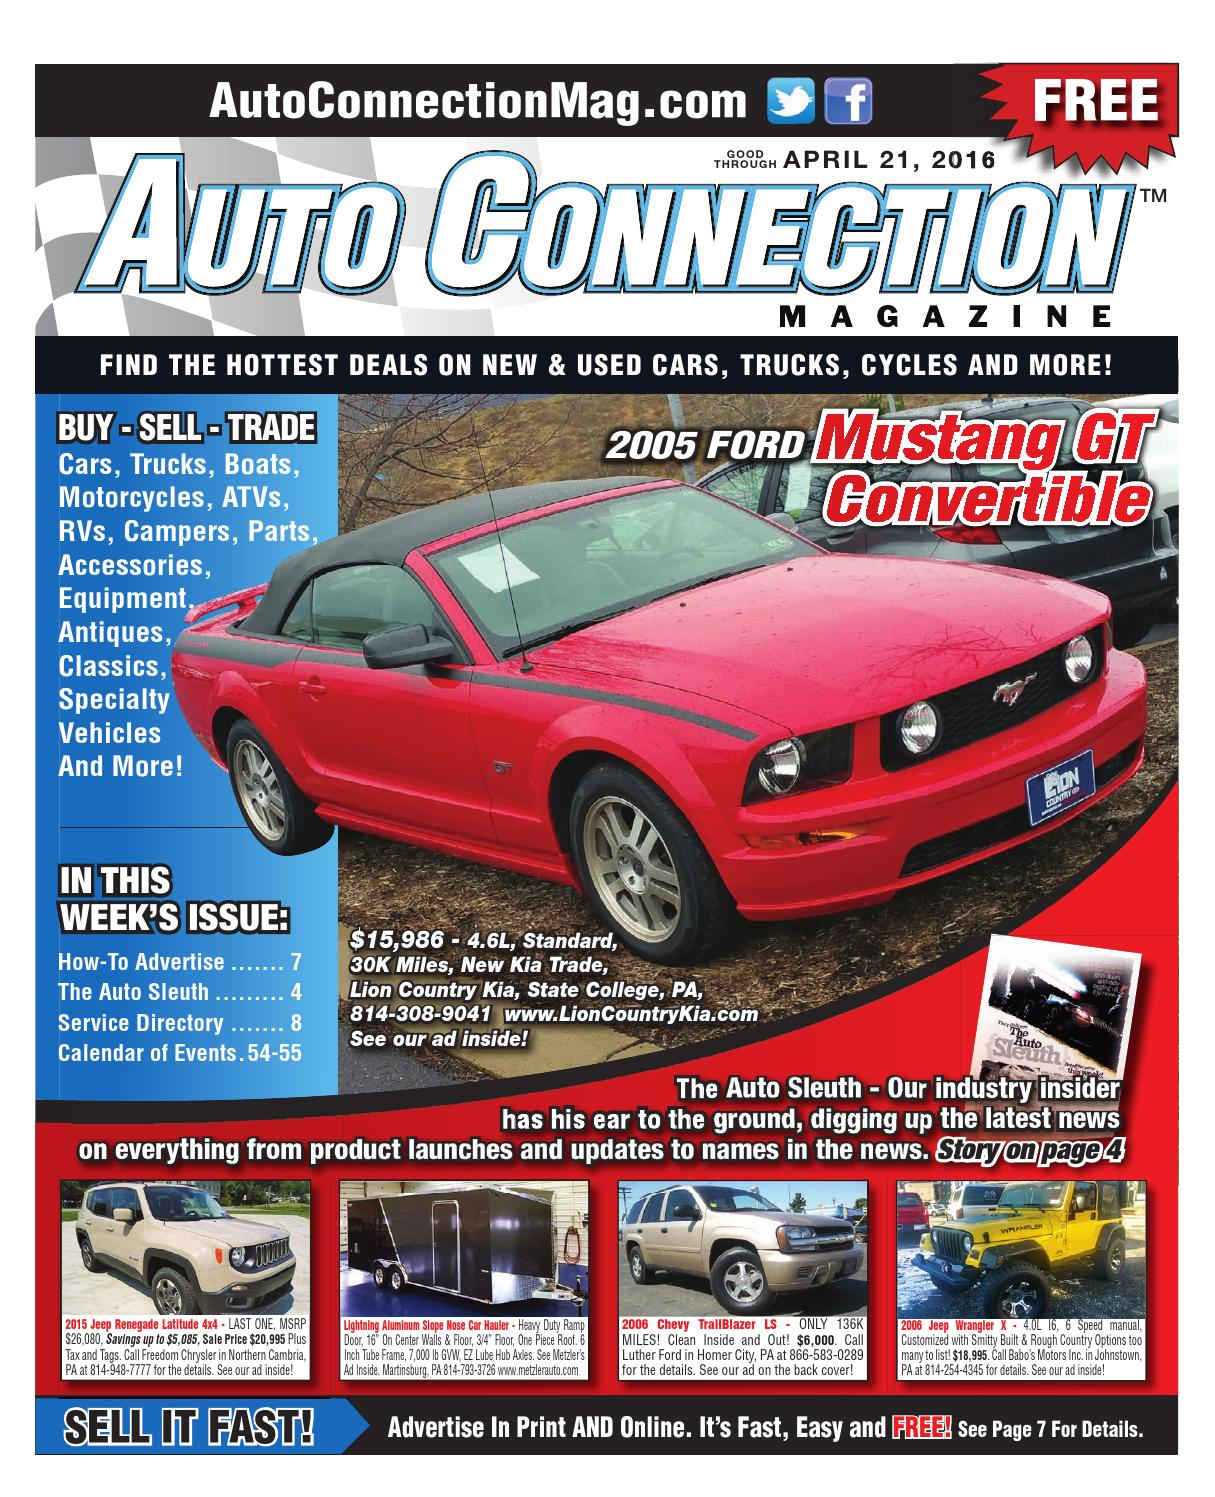 04 21 16 Auto Connection Magazine By Auto Connection